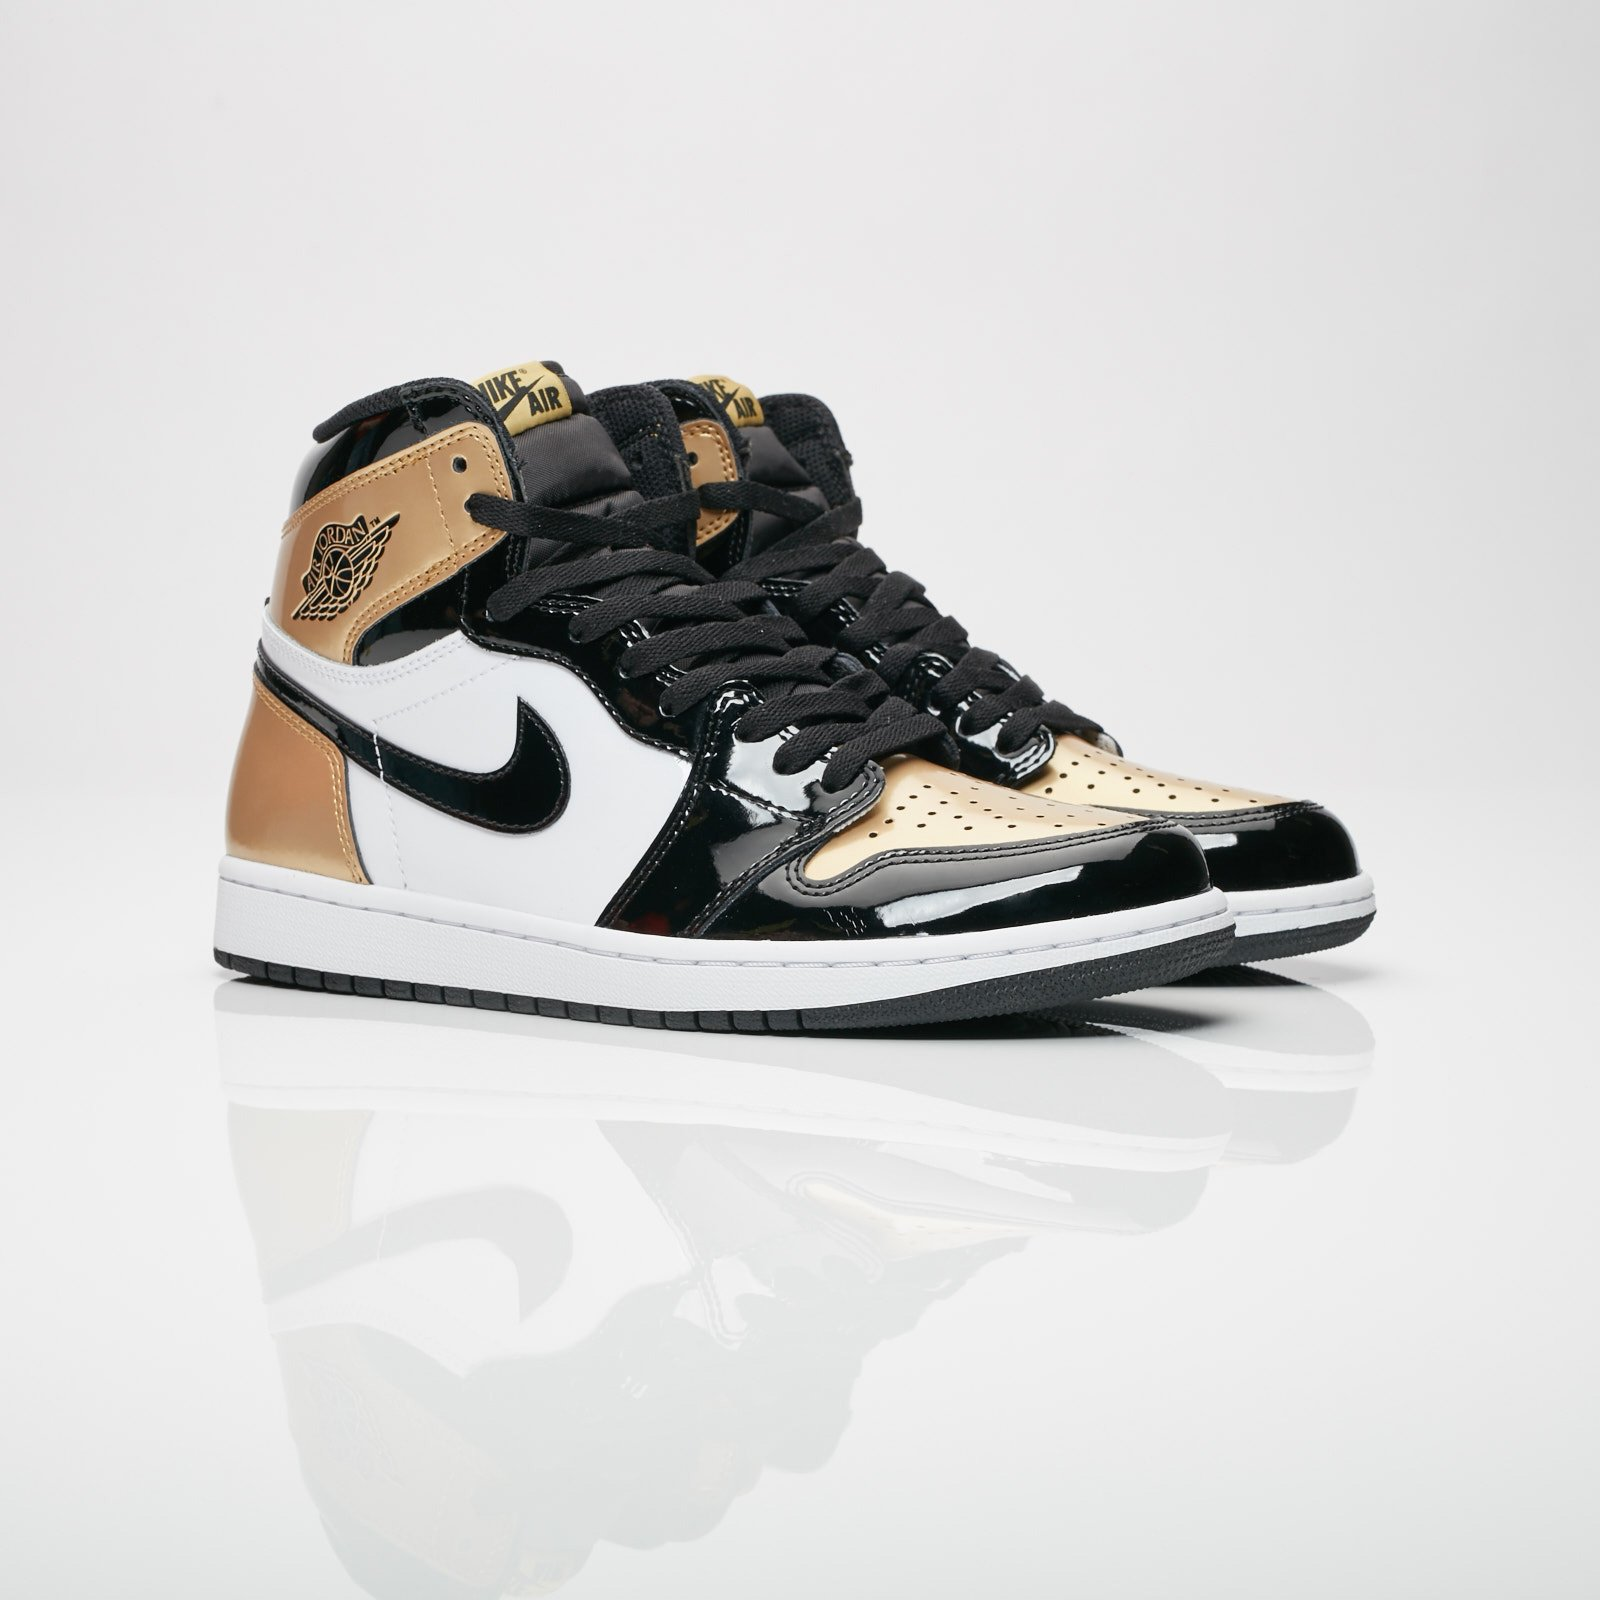 7e041feec23f Jordan Brand Air Jordan 1 Retro High OG NRG - 861428-007 ...